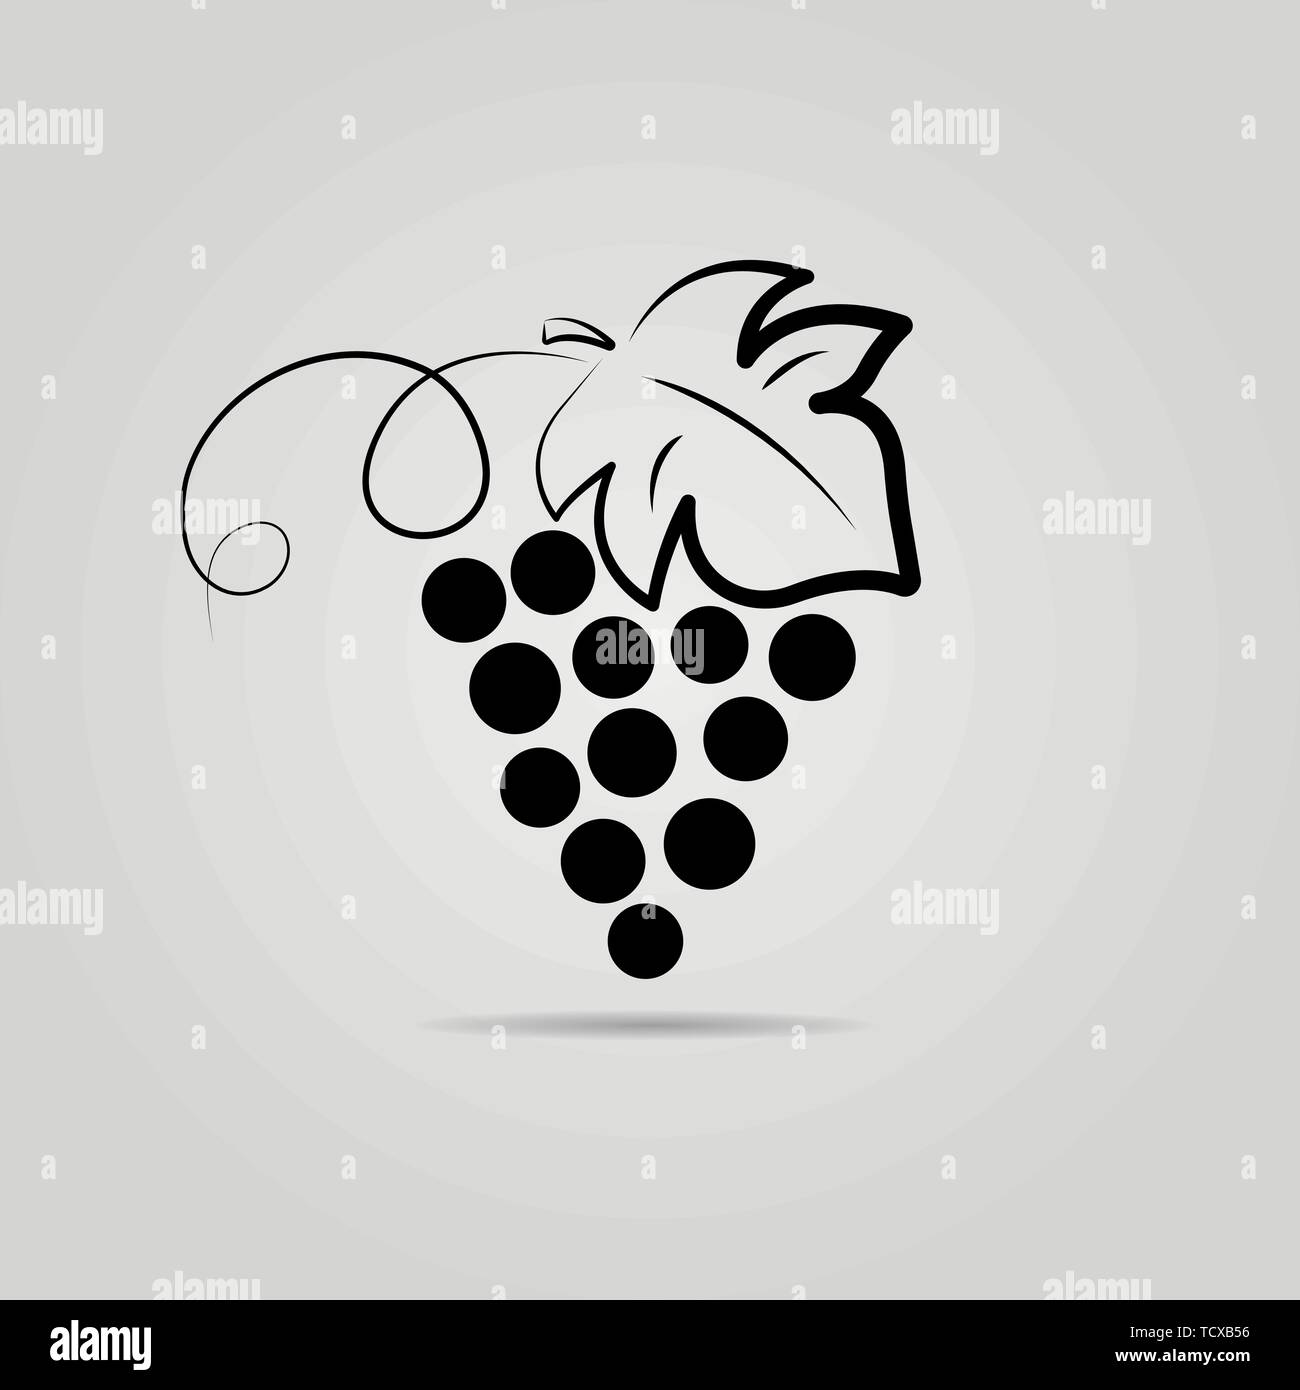 Bunch of grapes. Wine background. Logo design for the company. - Stock Vector